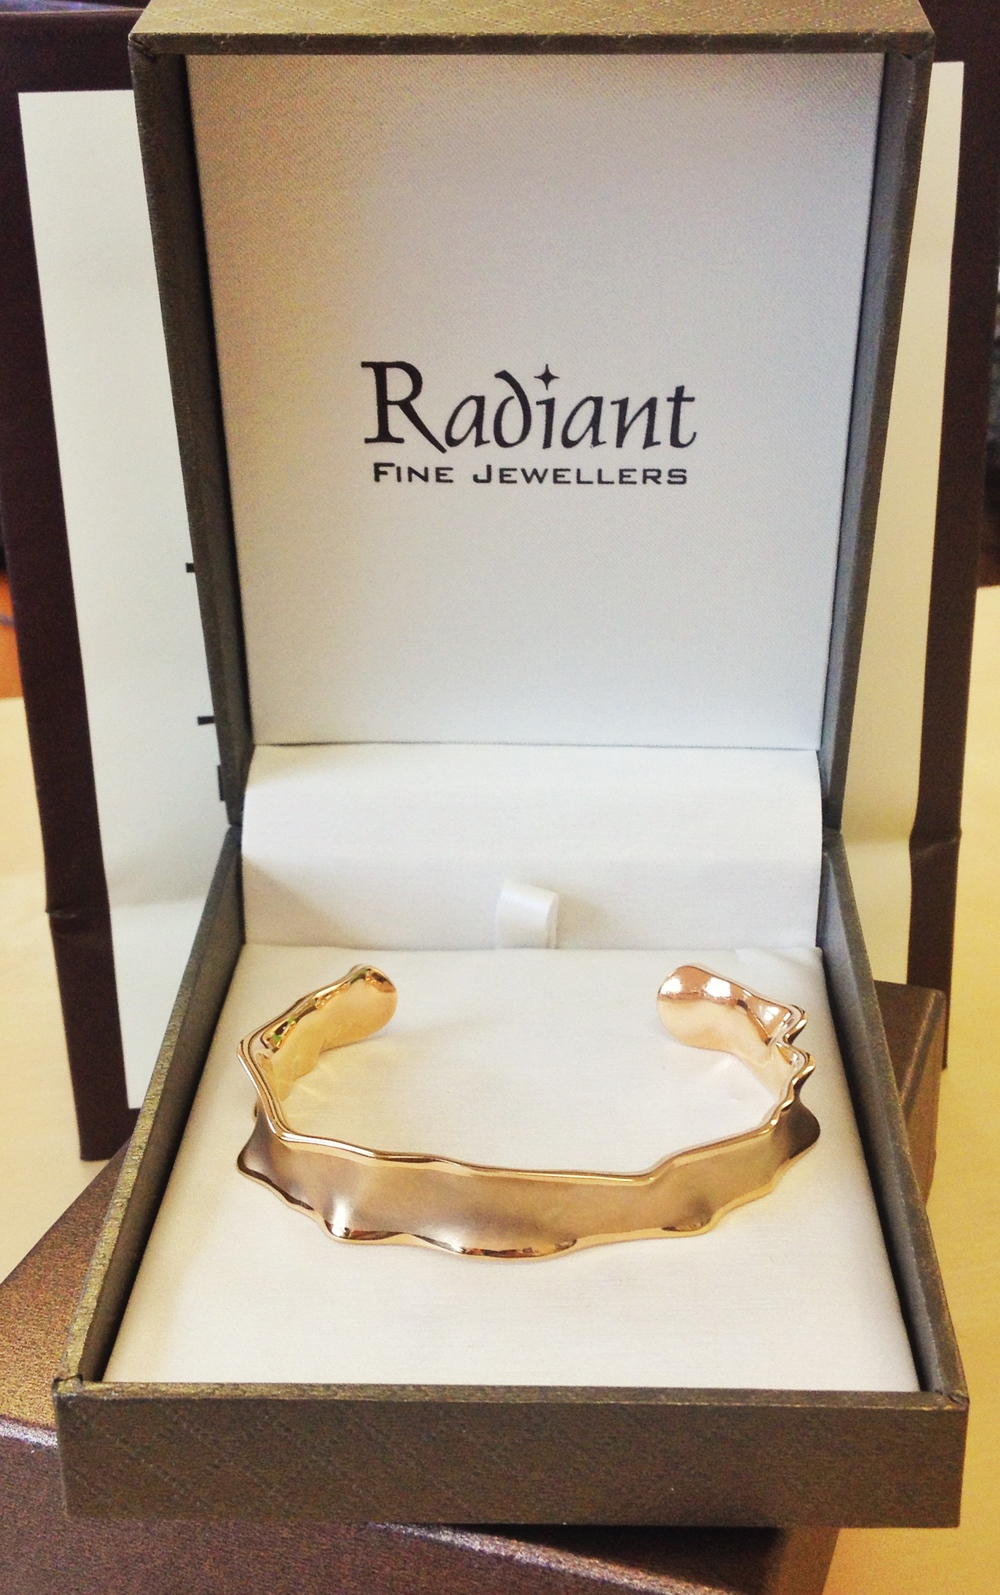 www.   radiantfinejewellers   .com   Radiant Fine Jewellers Charles Garnier silver/gold plated bangle bracelet $315 value